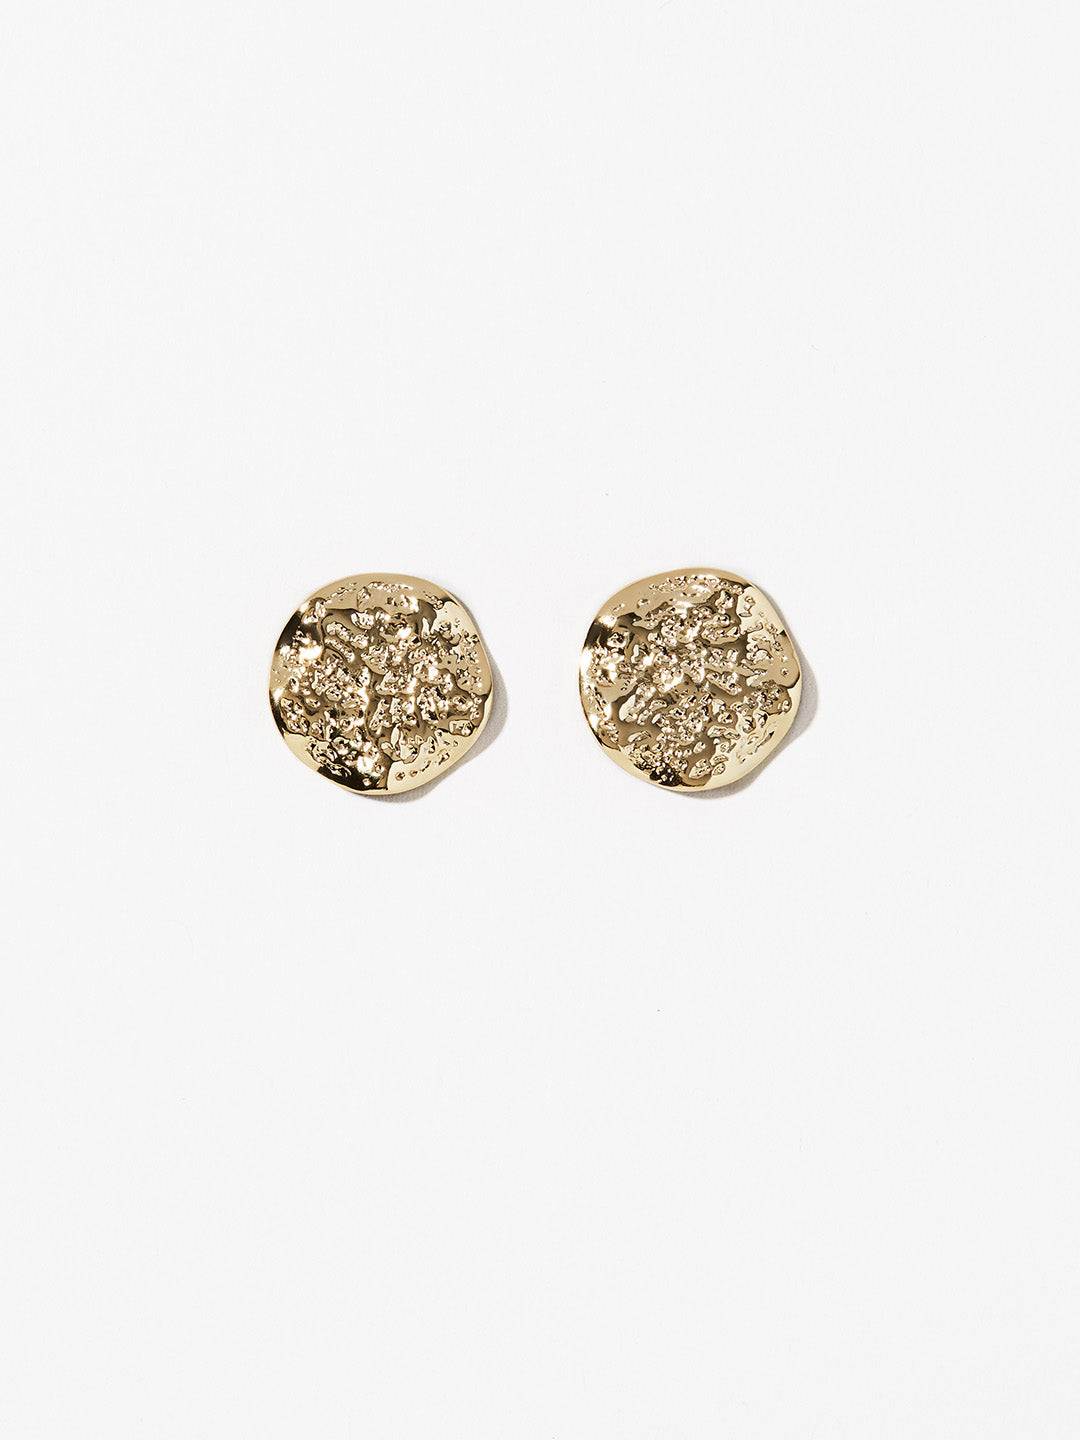 Ana Luisa Jewelry Earrings Studs Earrings Textured Coin Studs Lina Gold